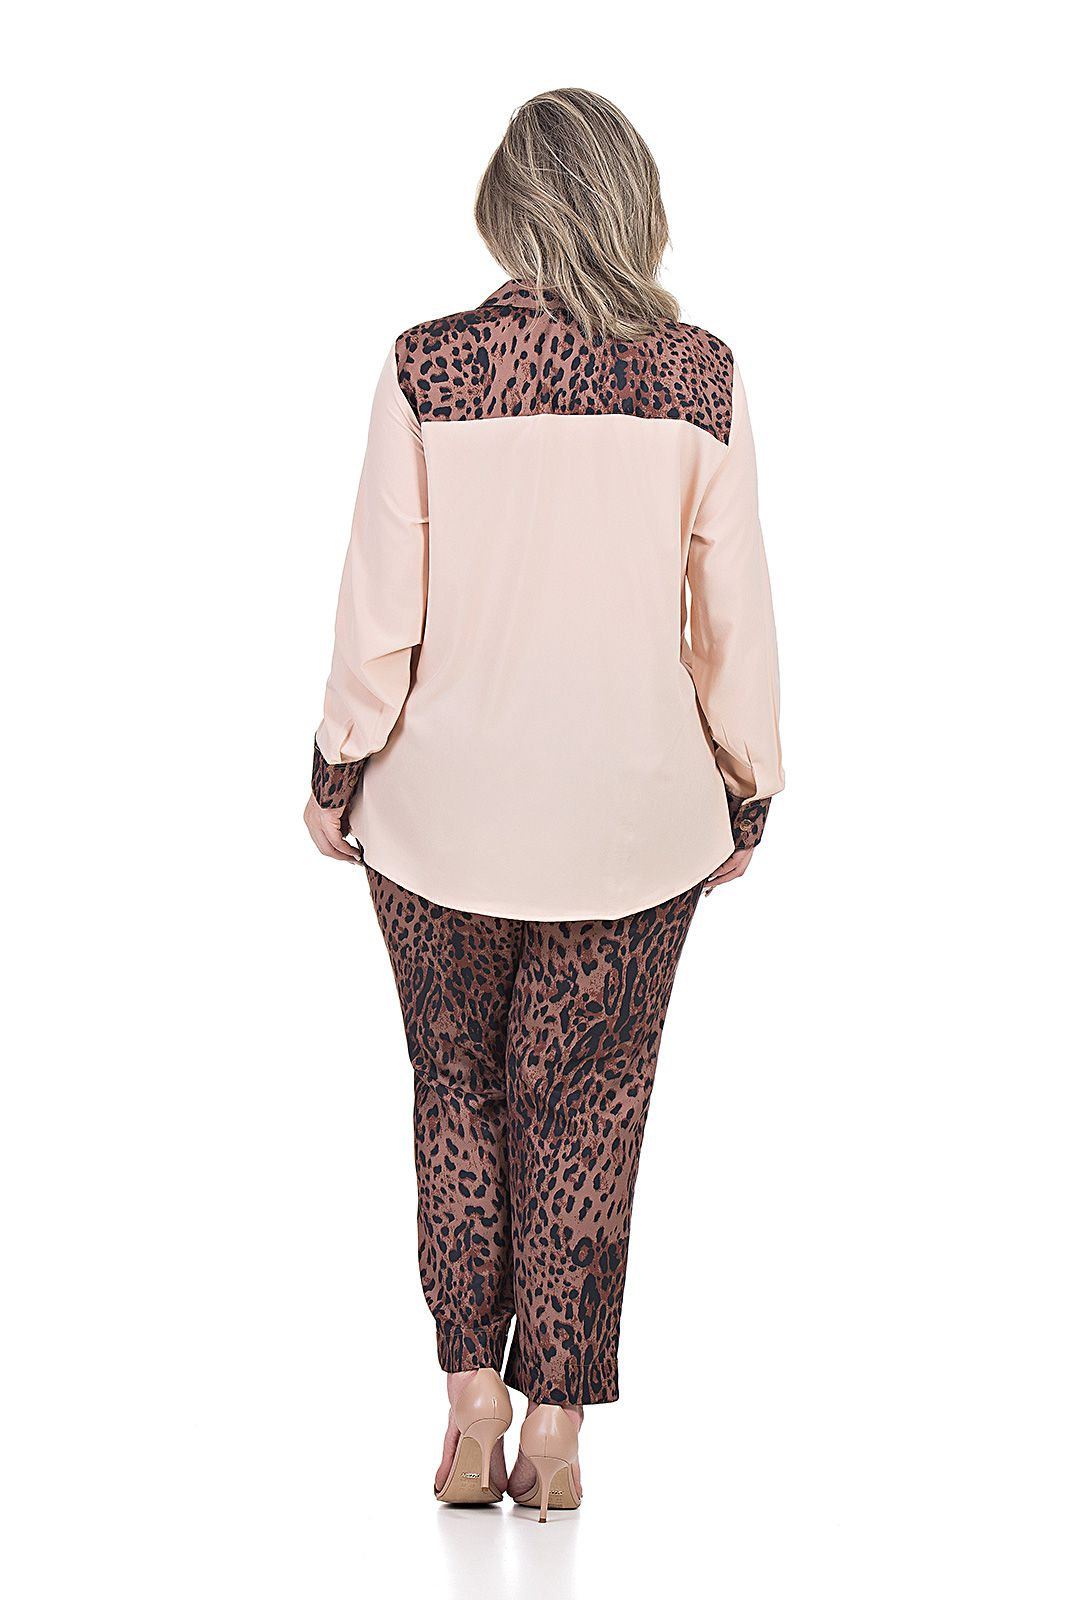 CALCA ELASTICO CONFORT - PLUS SIZE